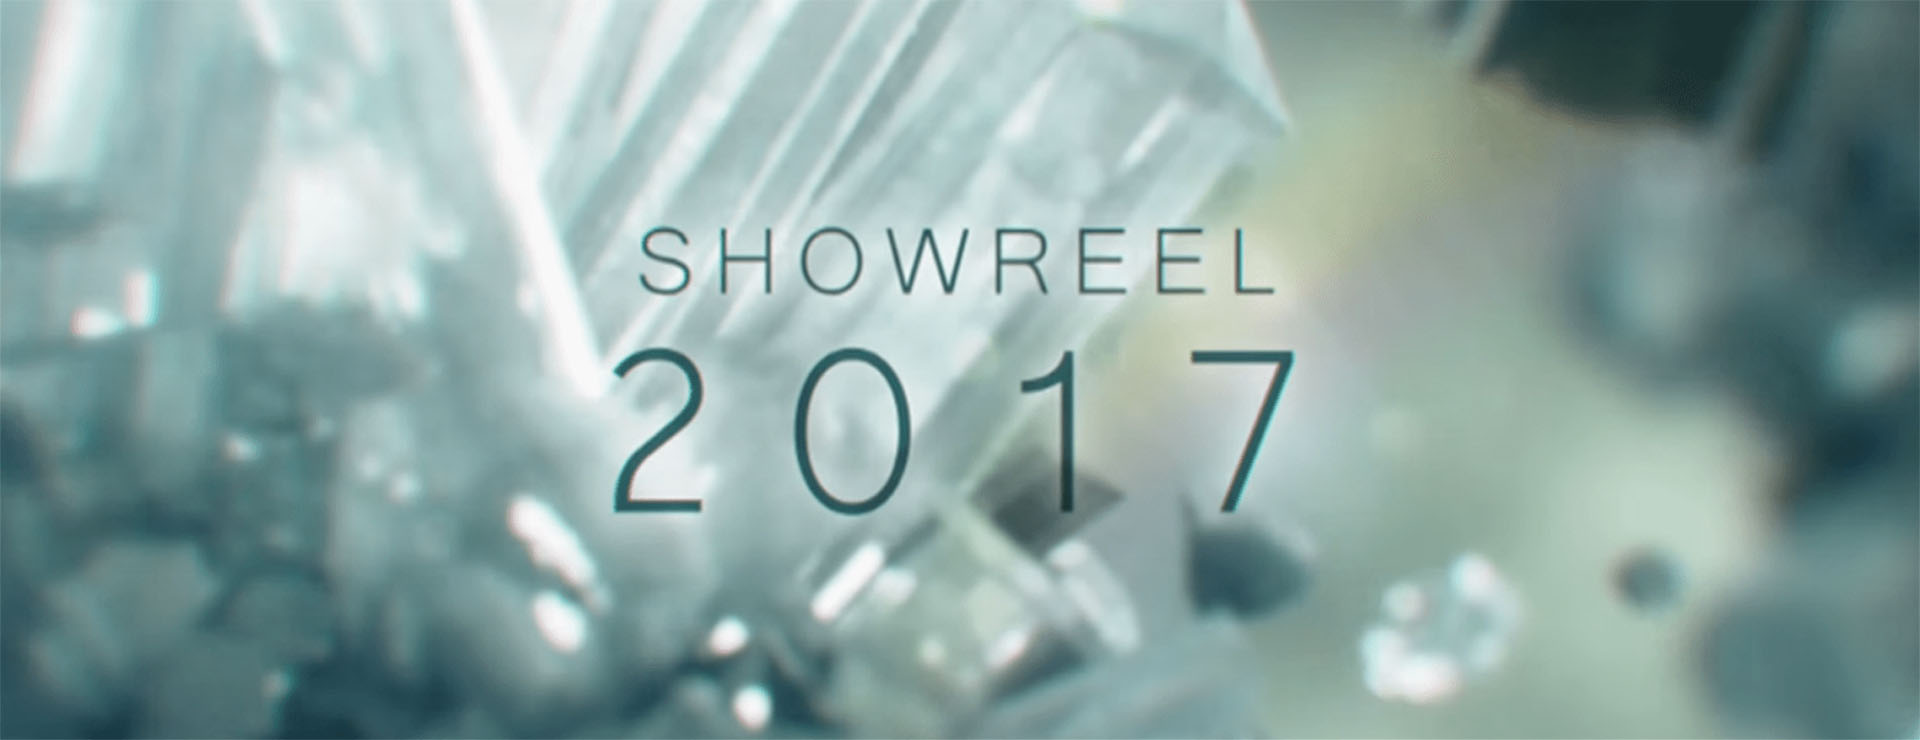 ALIEN studio showreel